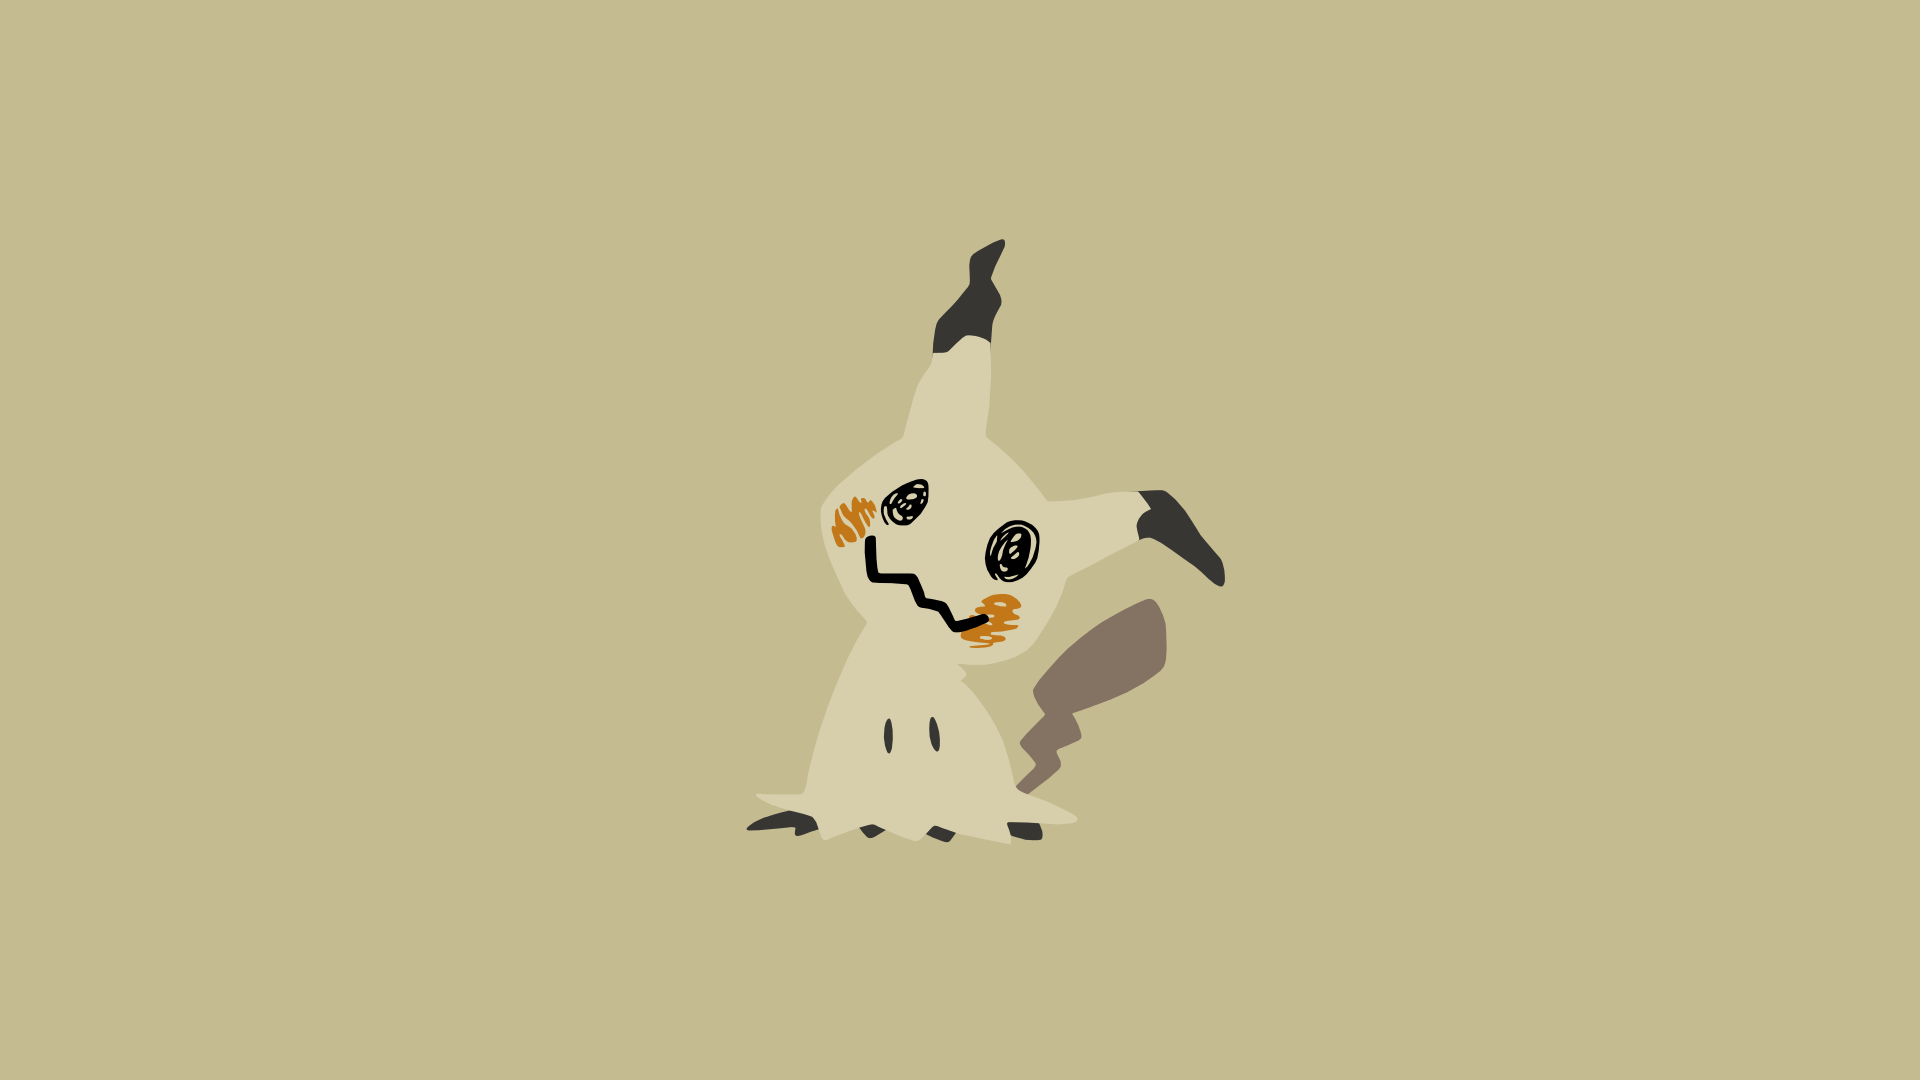 Minimalistic Wallpaper: Mimikyu (#778) by MardGeerT on DeviantArt